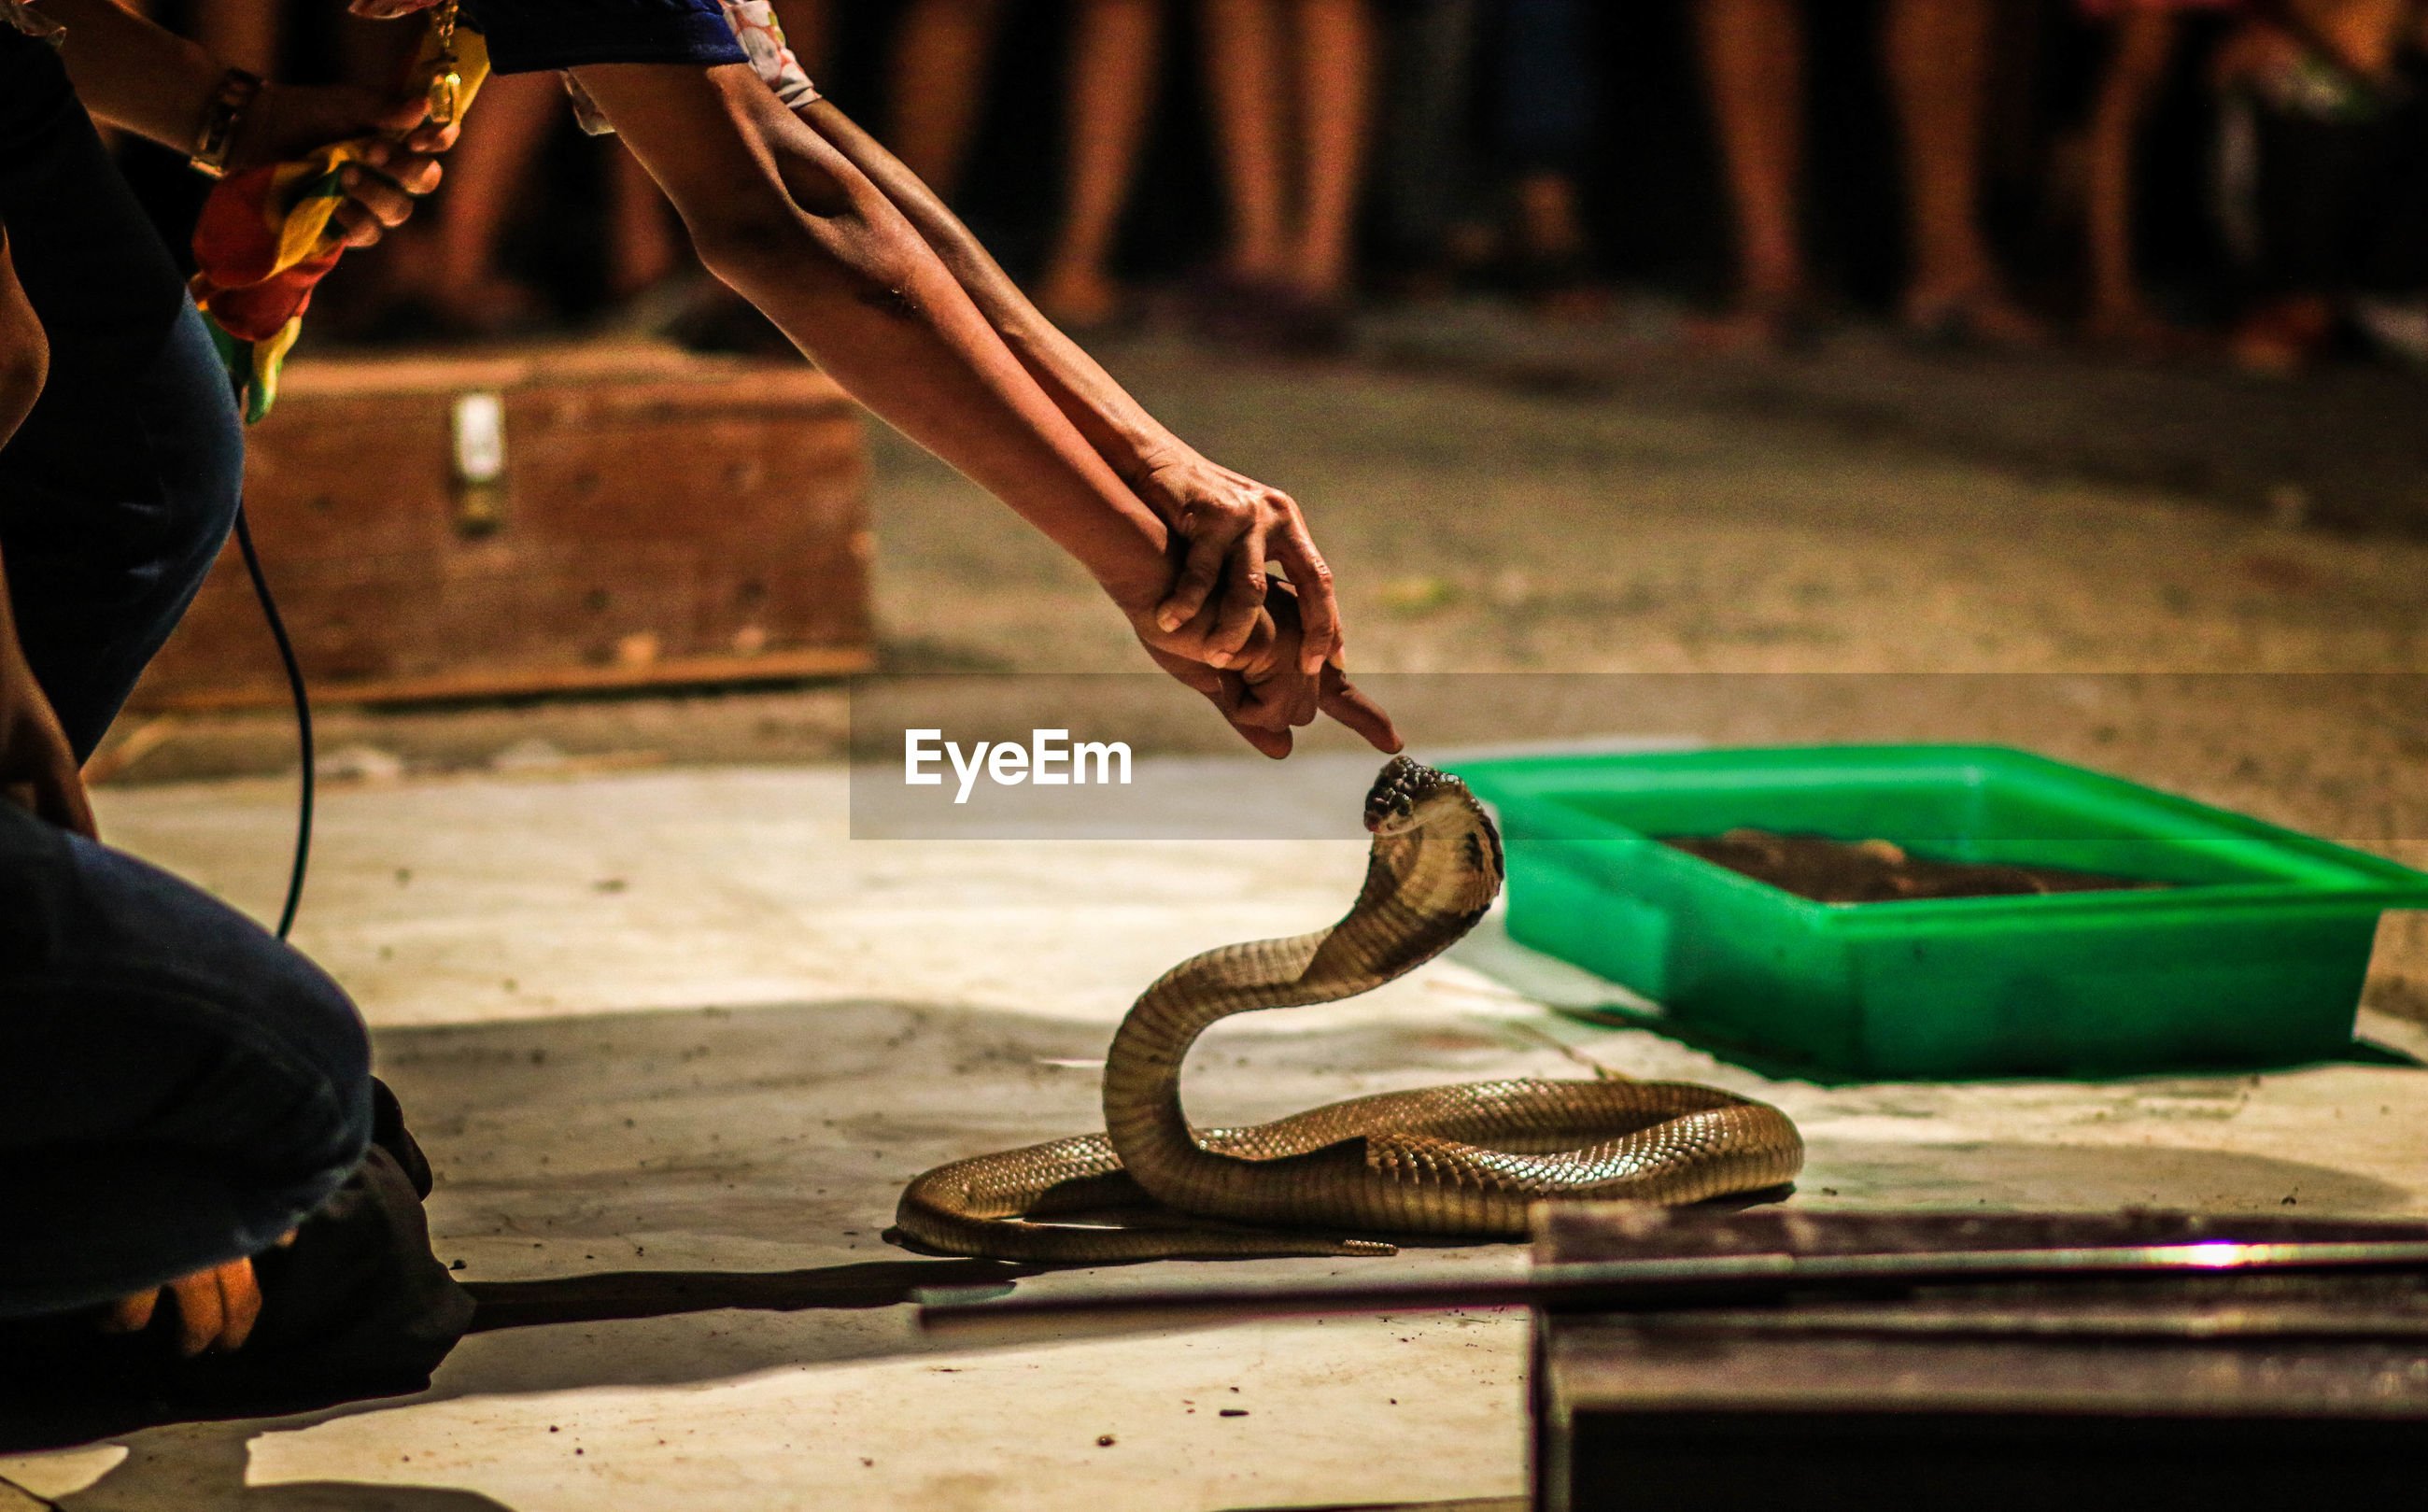 Cropped image of hands touching cobra on street